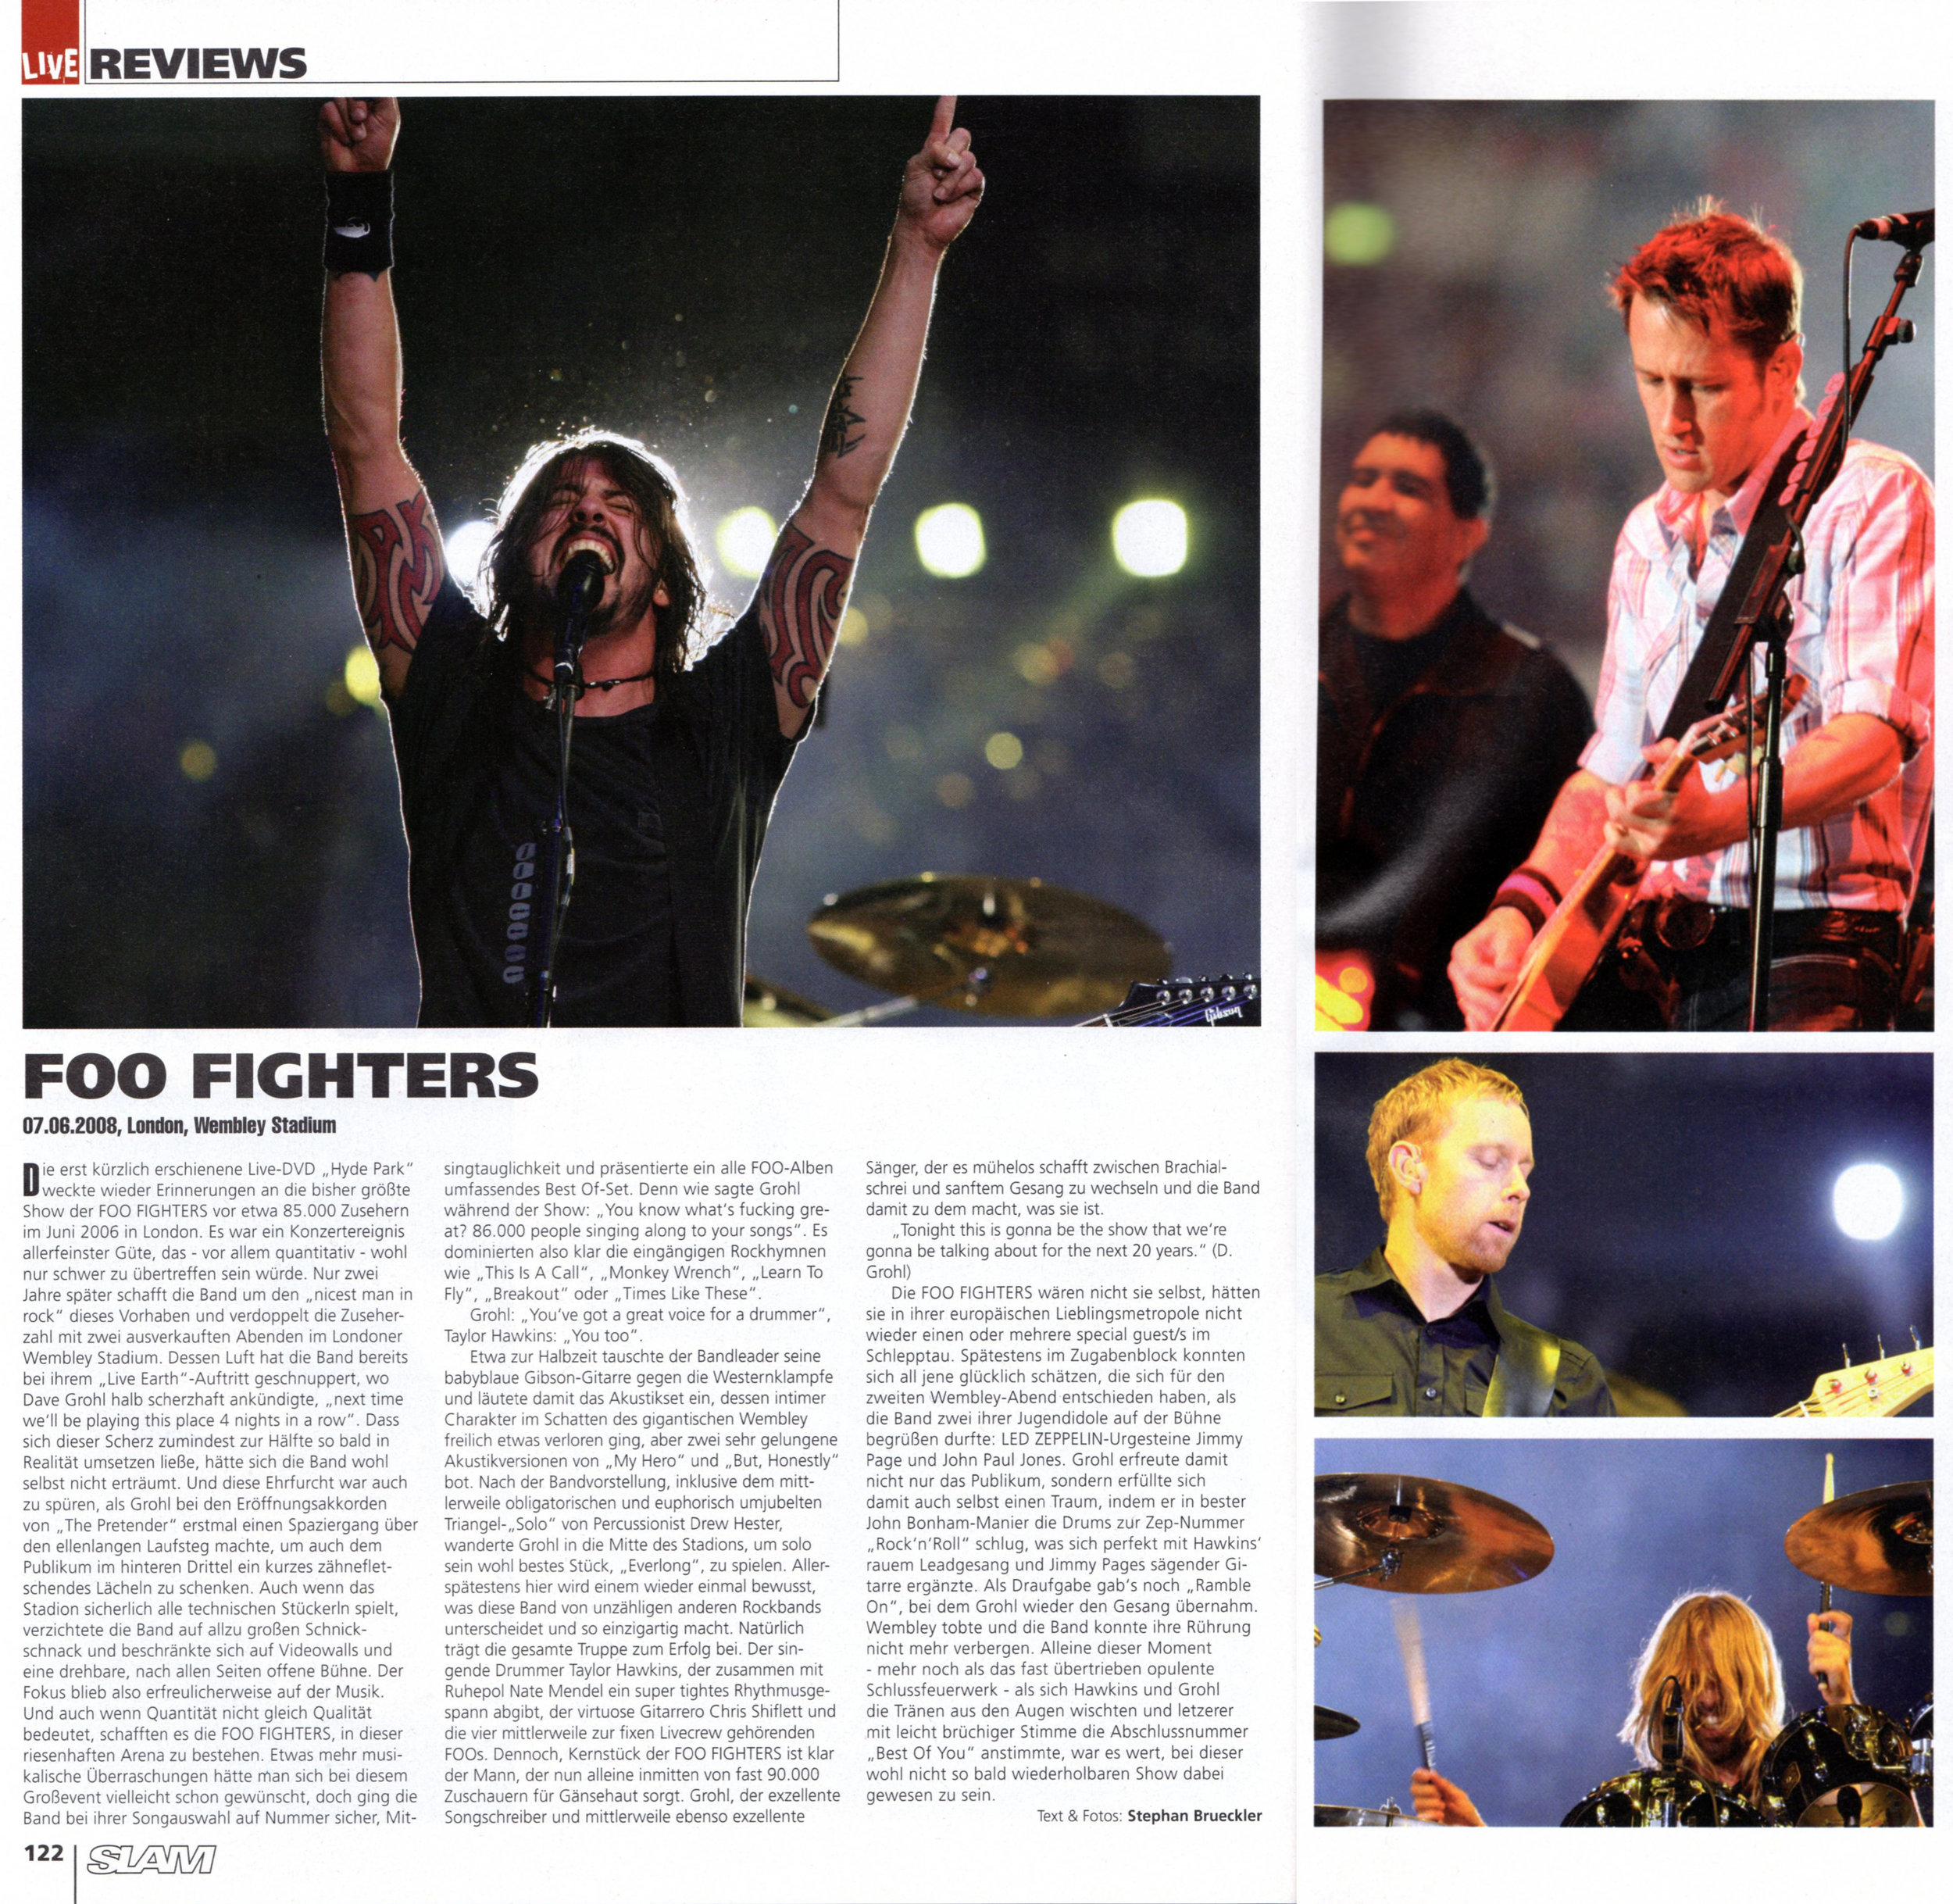 FOO FIGHTERS live in London/Wembley Stadium, 2008